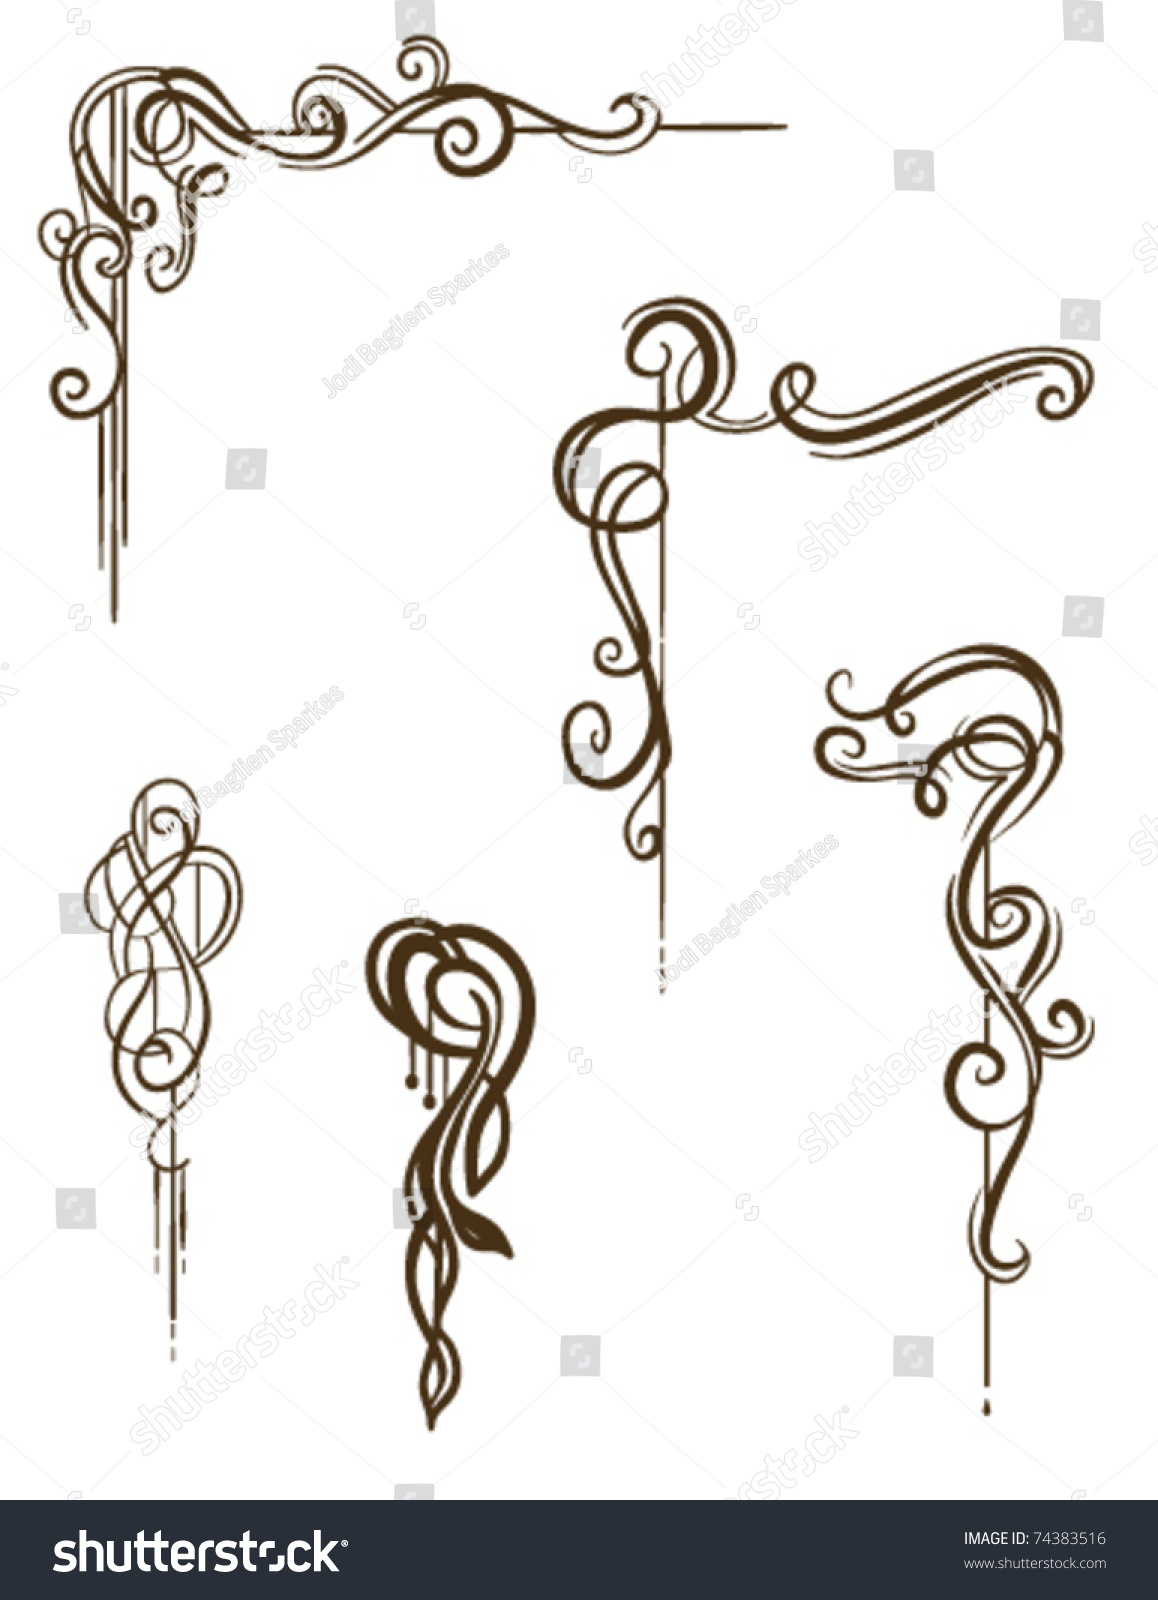 Vintage style ornaments - Vector Scroll Collection Hand Drawn Vintage Style Ornaments Scrolls